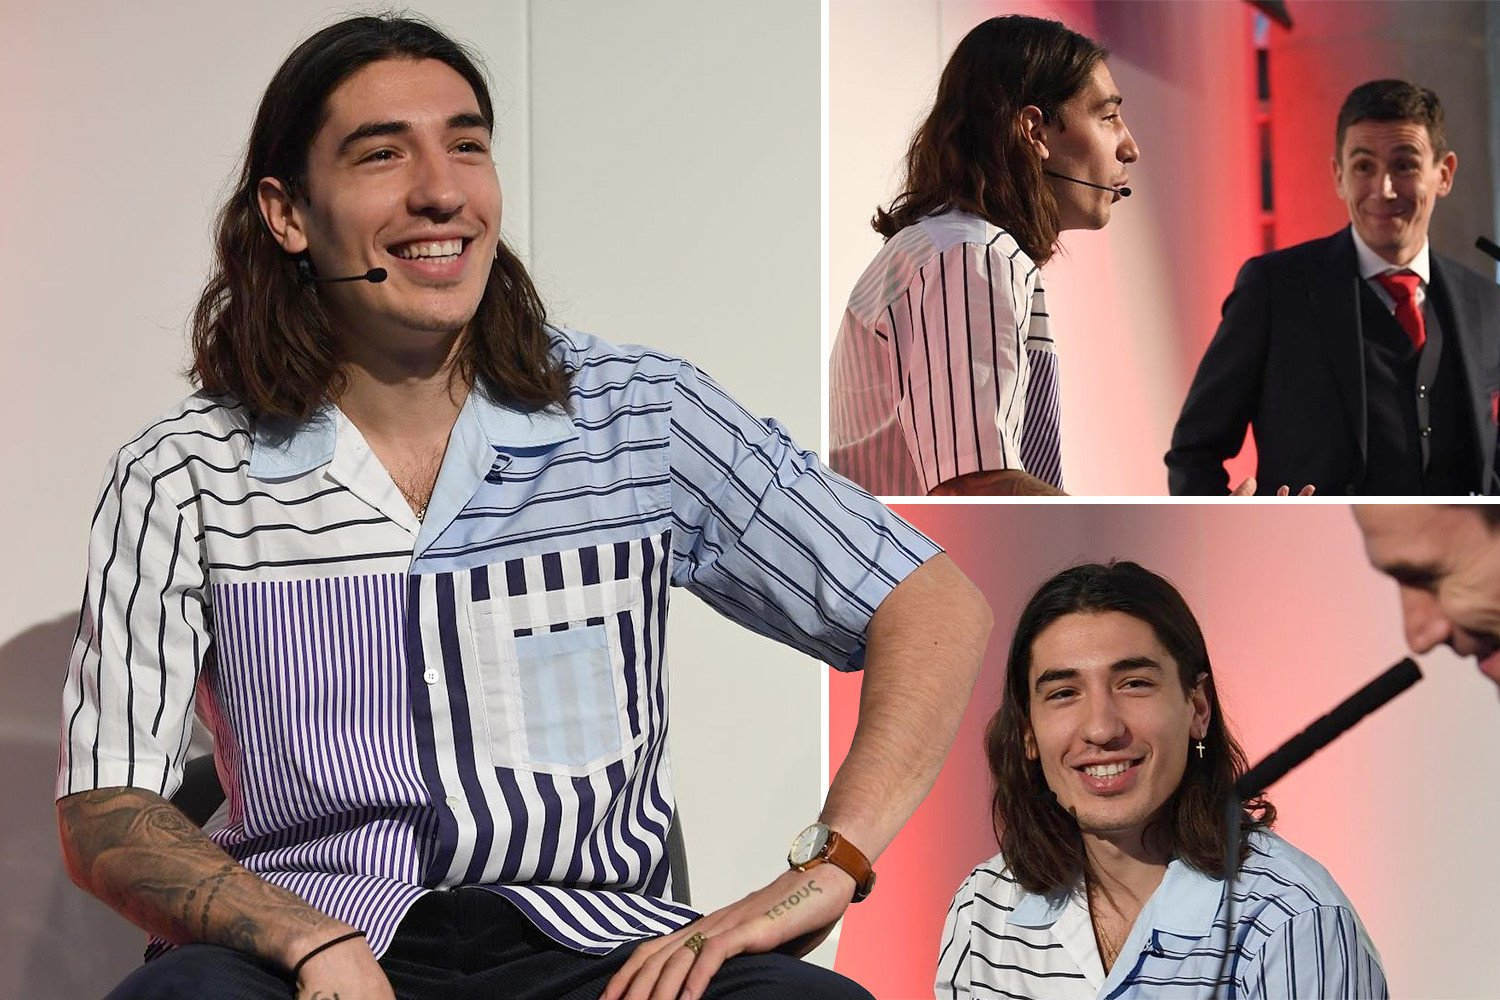 Bellerin could be 'better than ever' after injury return, says Arsenal doc